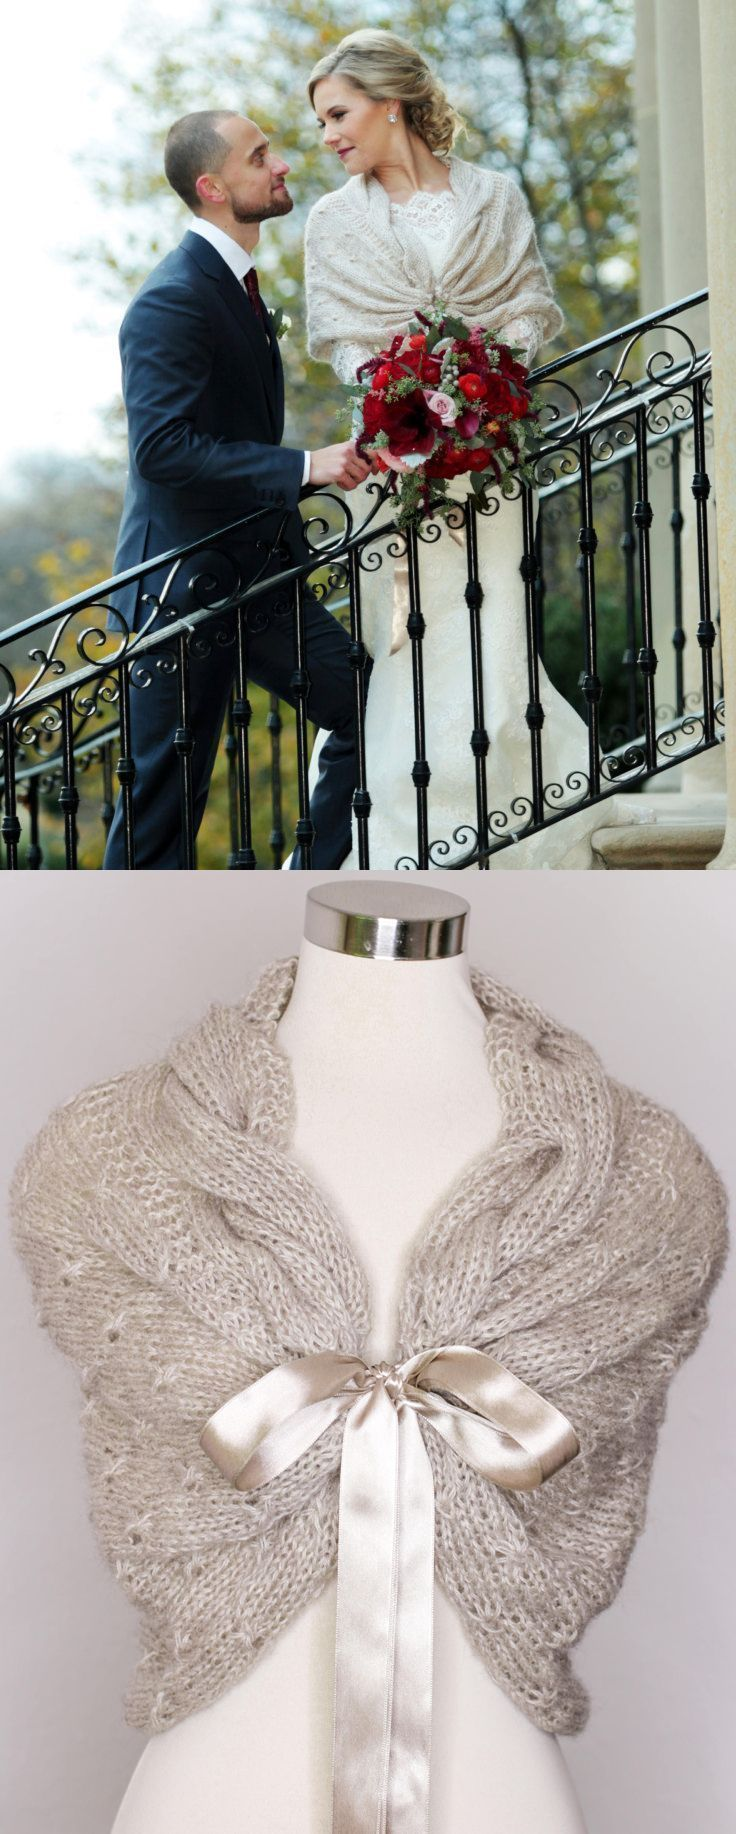 Versatile crochet wedding cover up wrap that can be worn in many